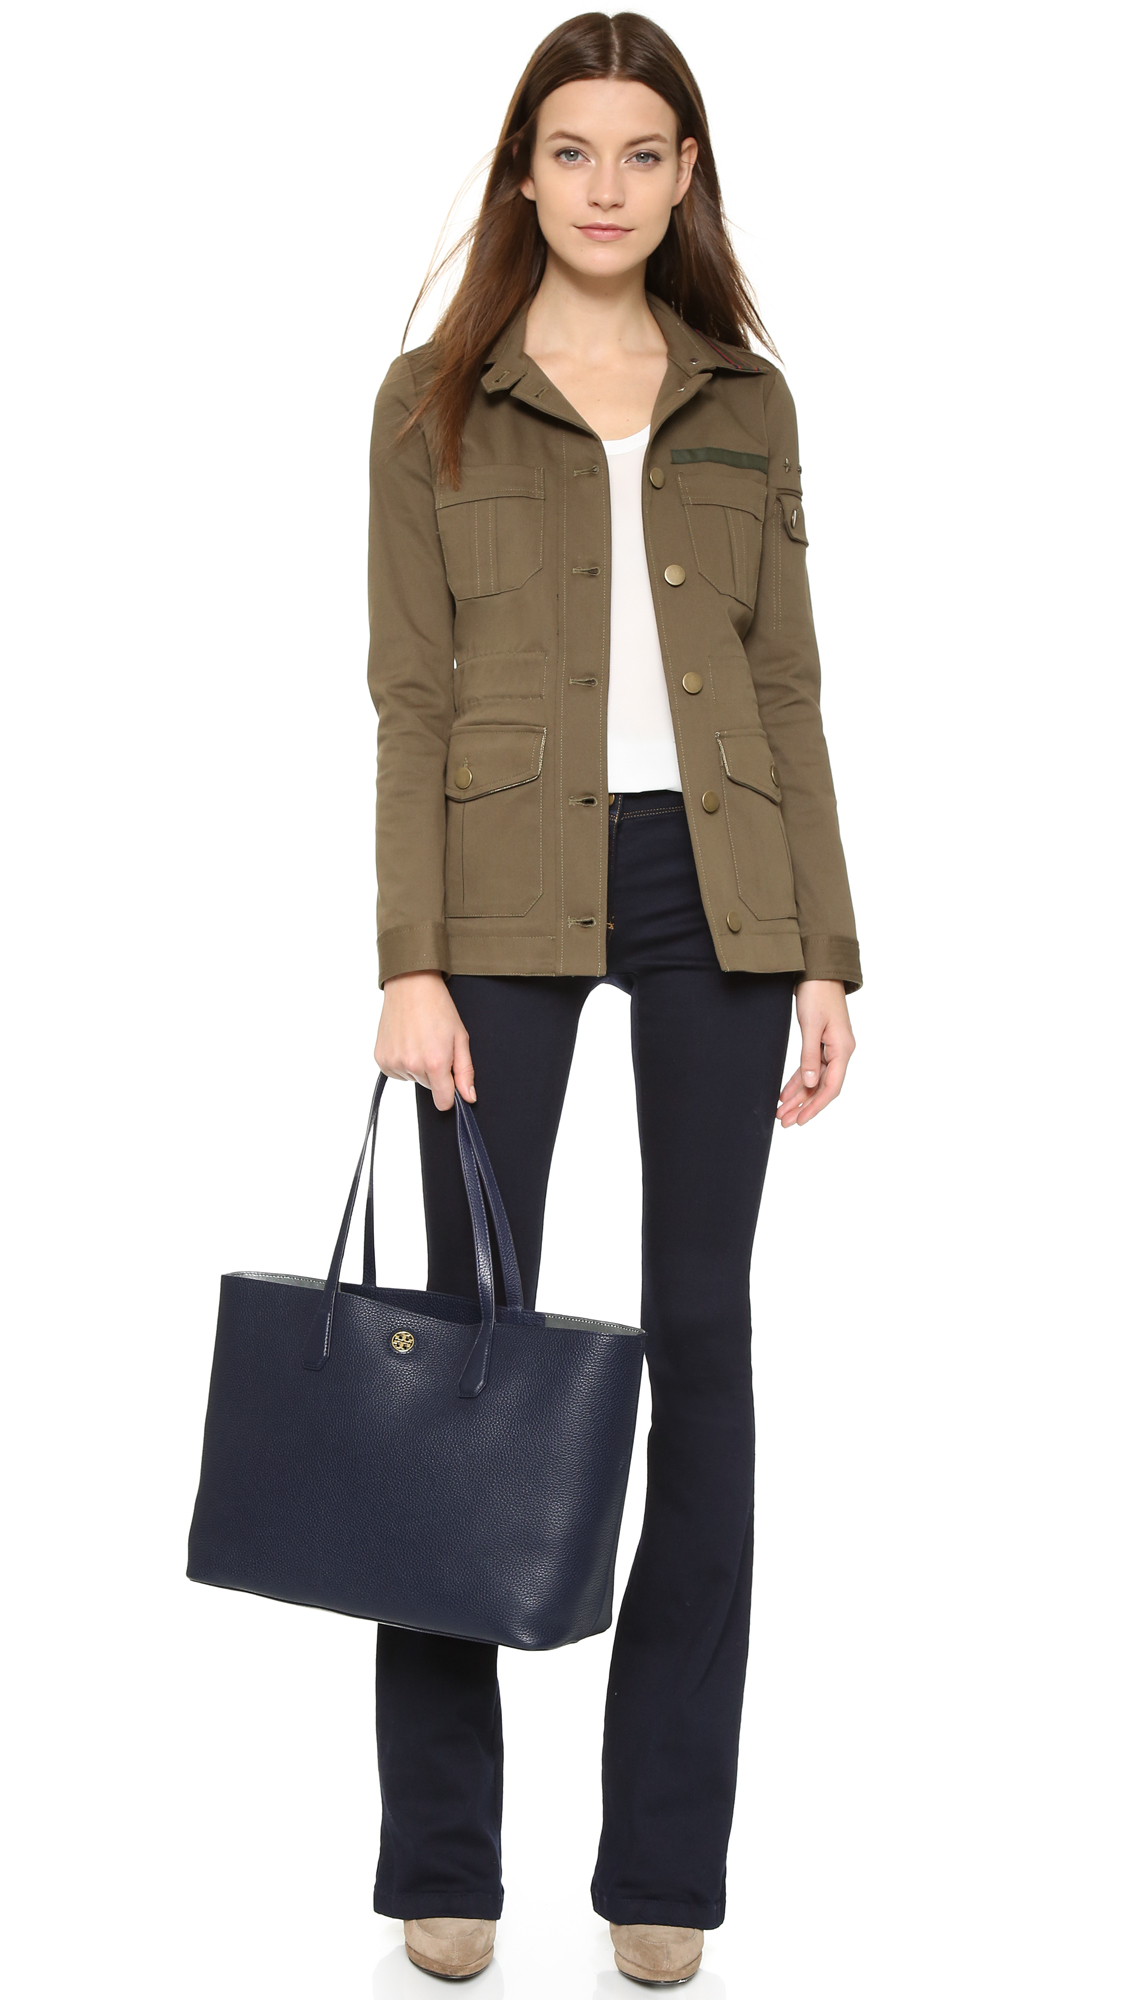 Lyst - Tory burch Perry Tote